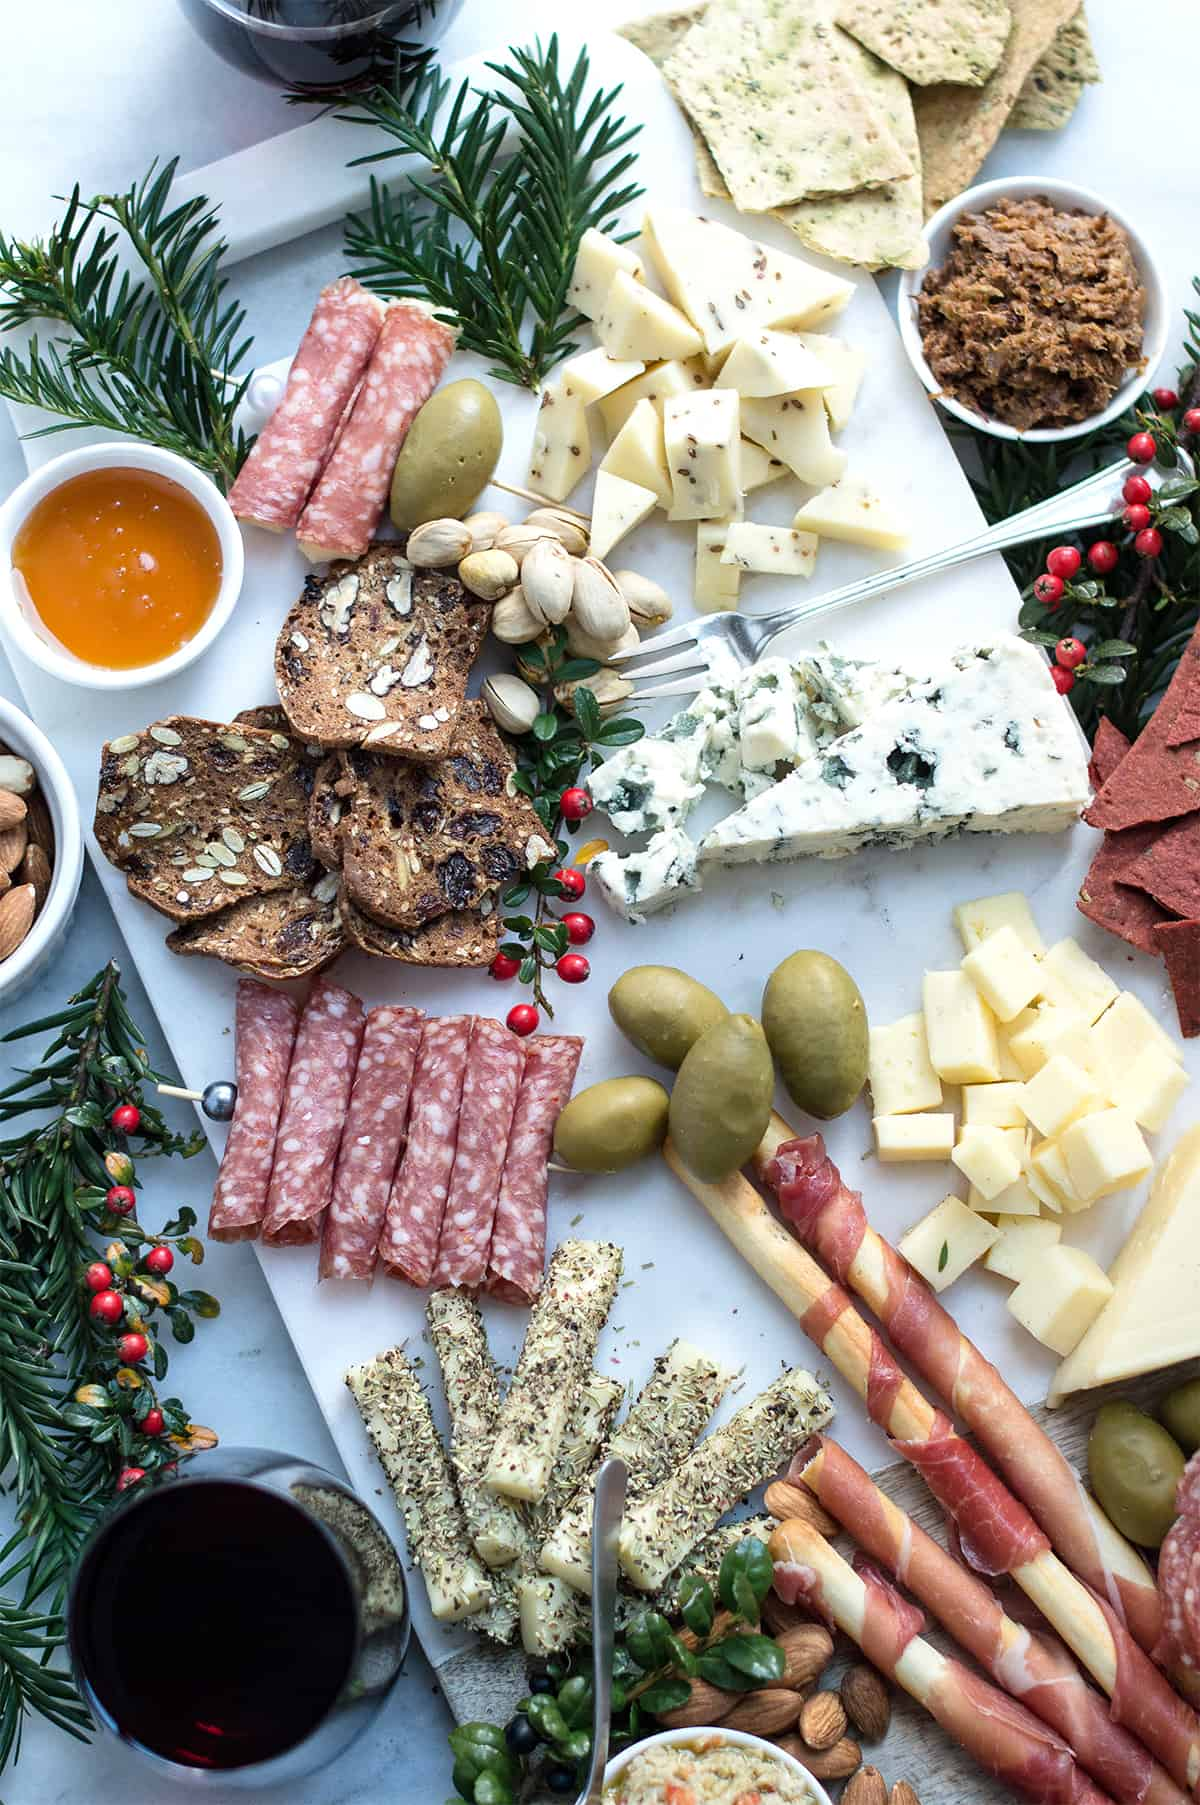 holiday cheese board with cold cuts, crackers, cheeses, and holiday garland